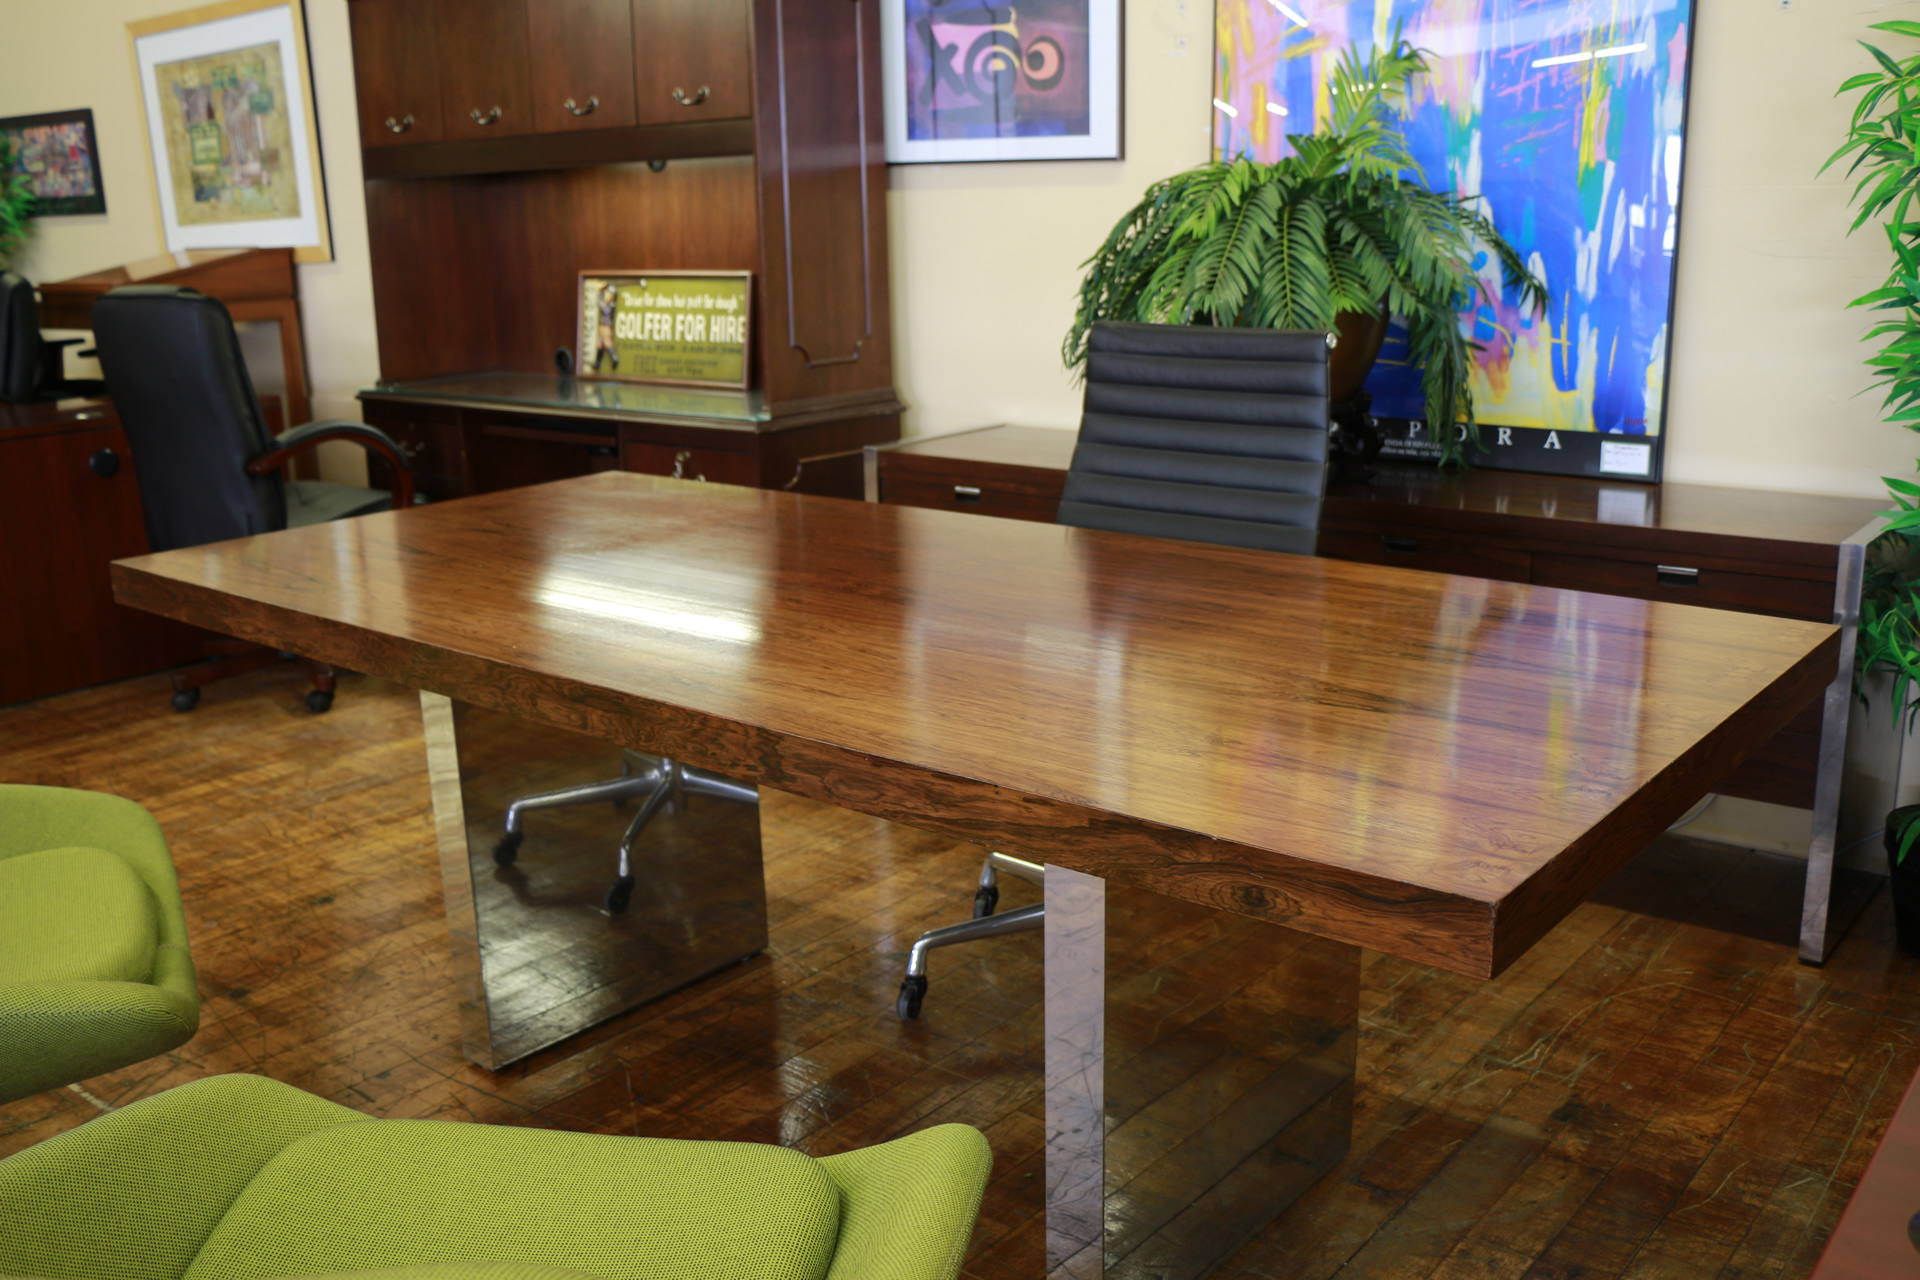 peartreeofficefurniture_peartreeofficefurniture_mg_3745.jpg